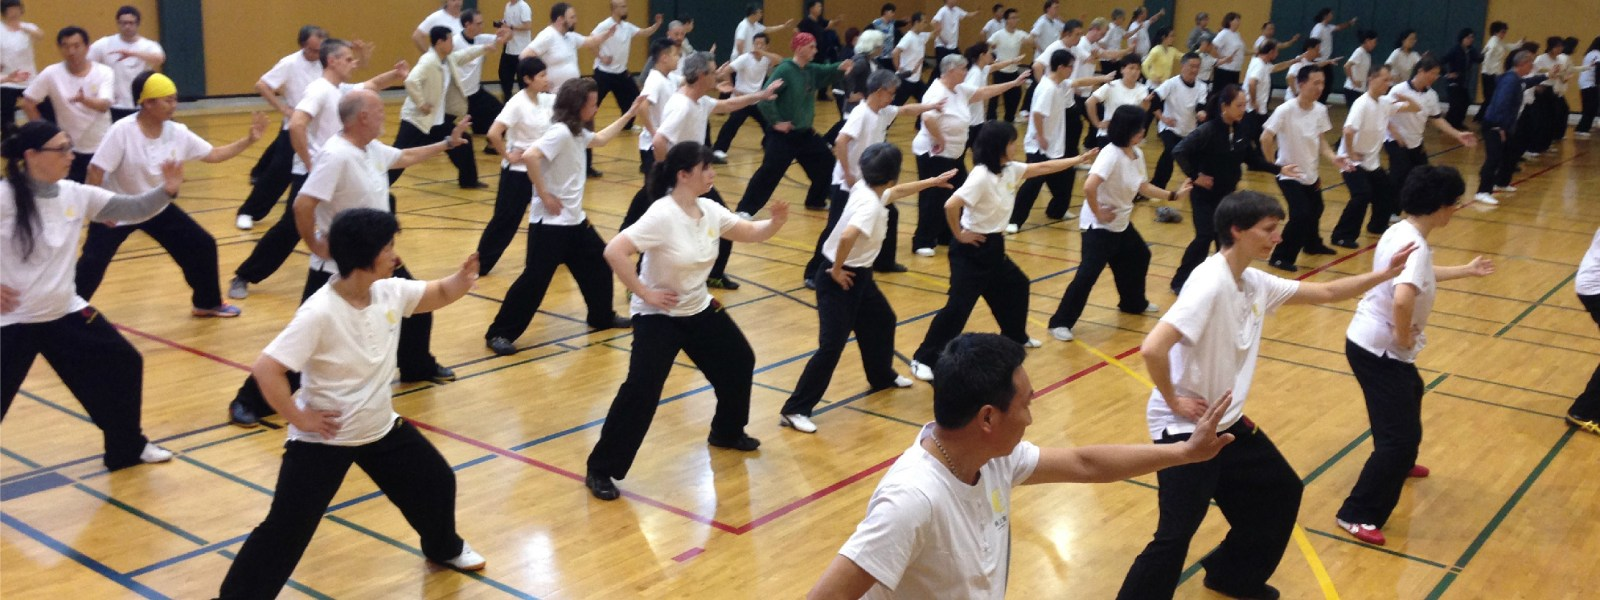 Metarobics and the Future of Tai Chi for Health